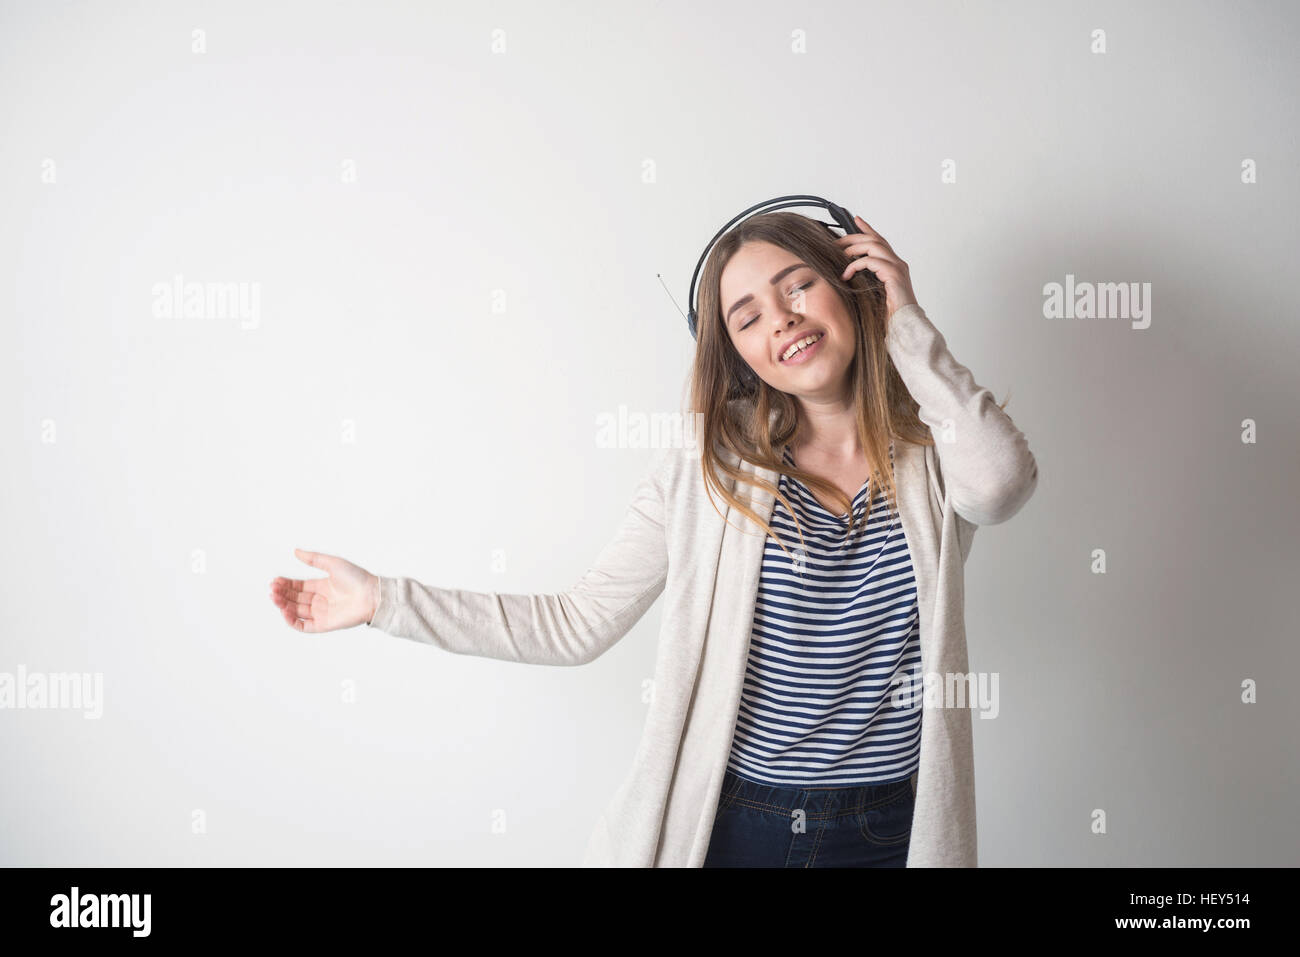 Girl with headphones, listening to music - Stock Image